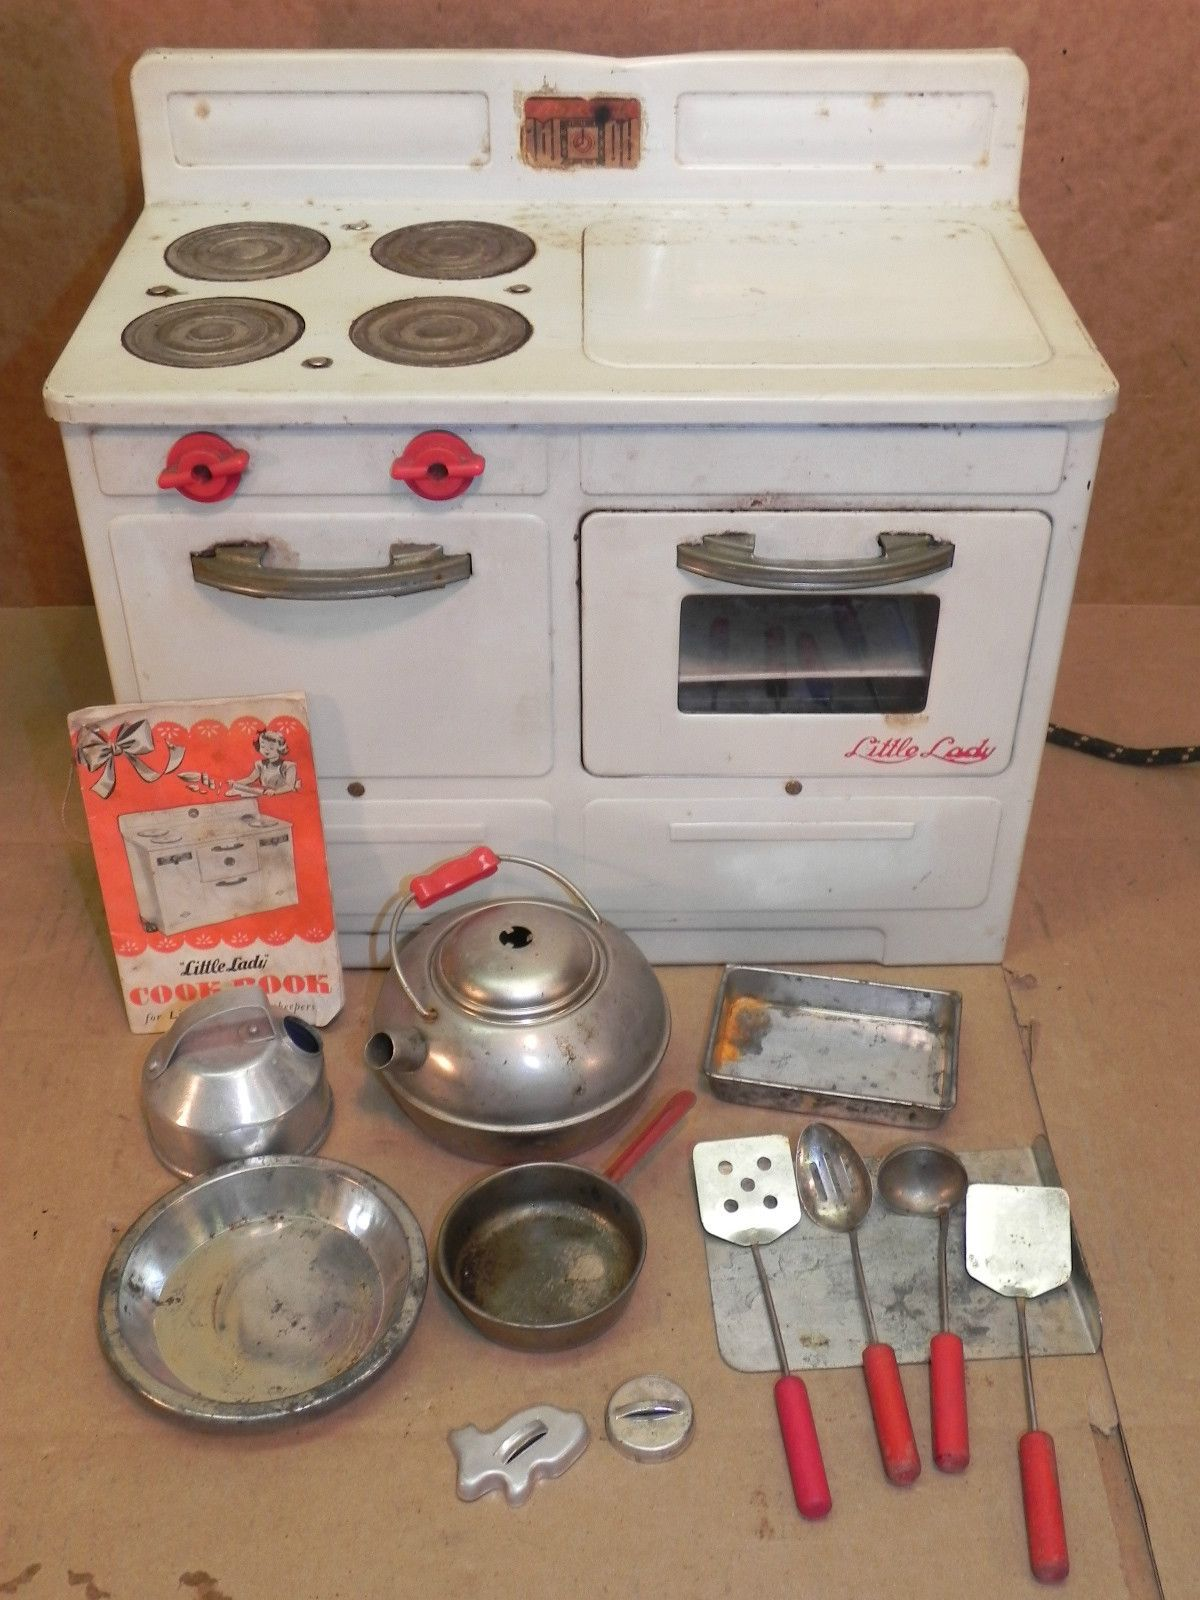 Are Vintage Electric Stoves Safe ~ Vintage empire toy little lady electric stove kitchen